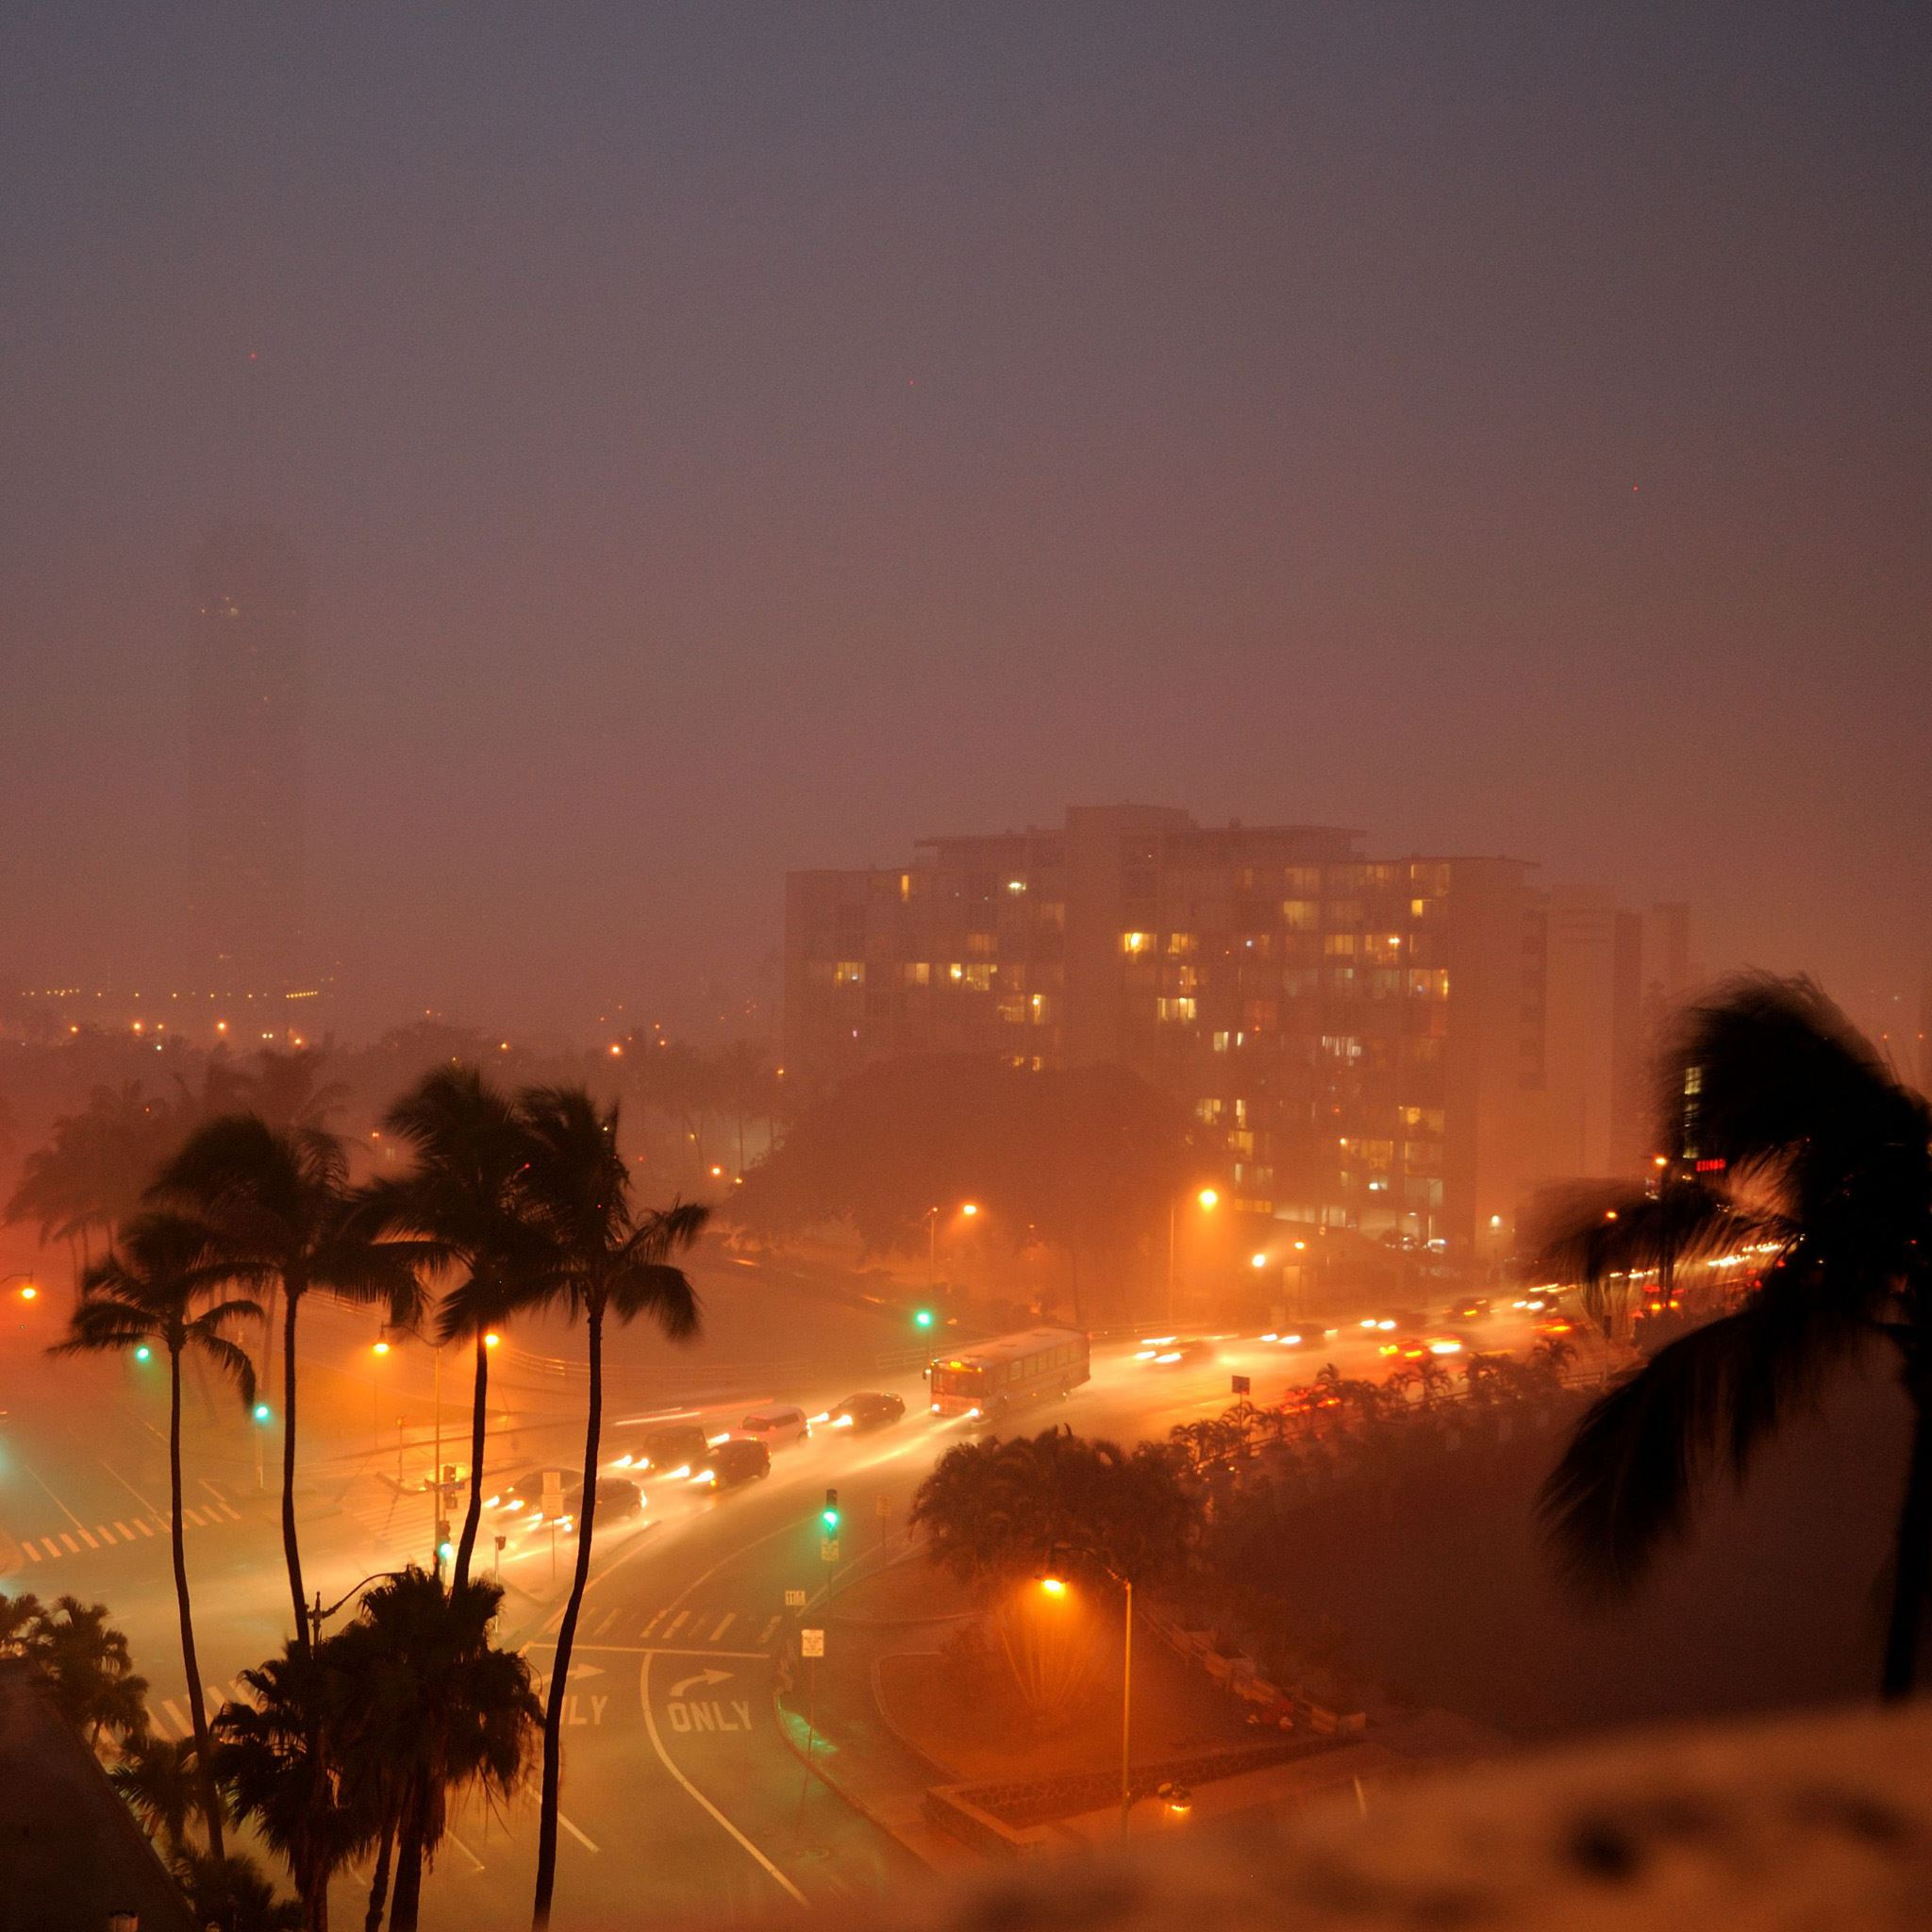 Rainy Tropical Night City IPad Air Wallpapers Free Download